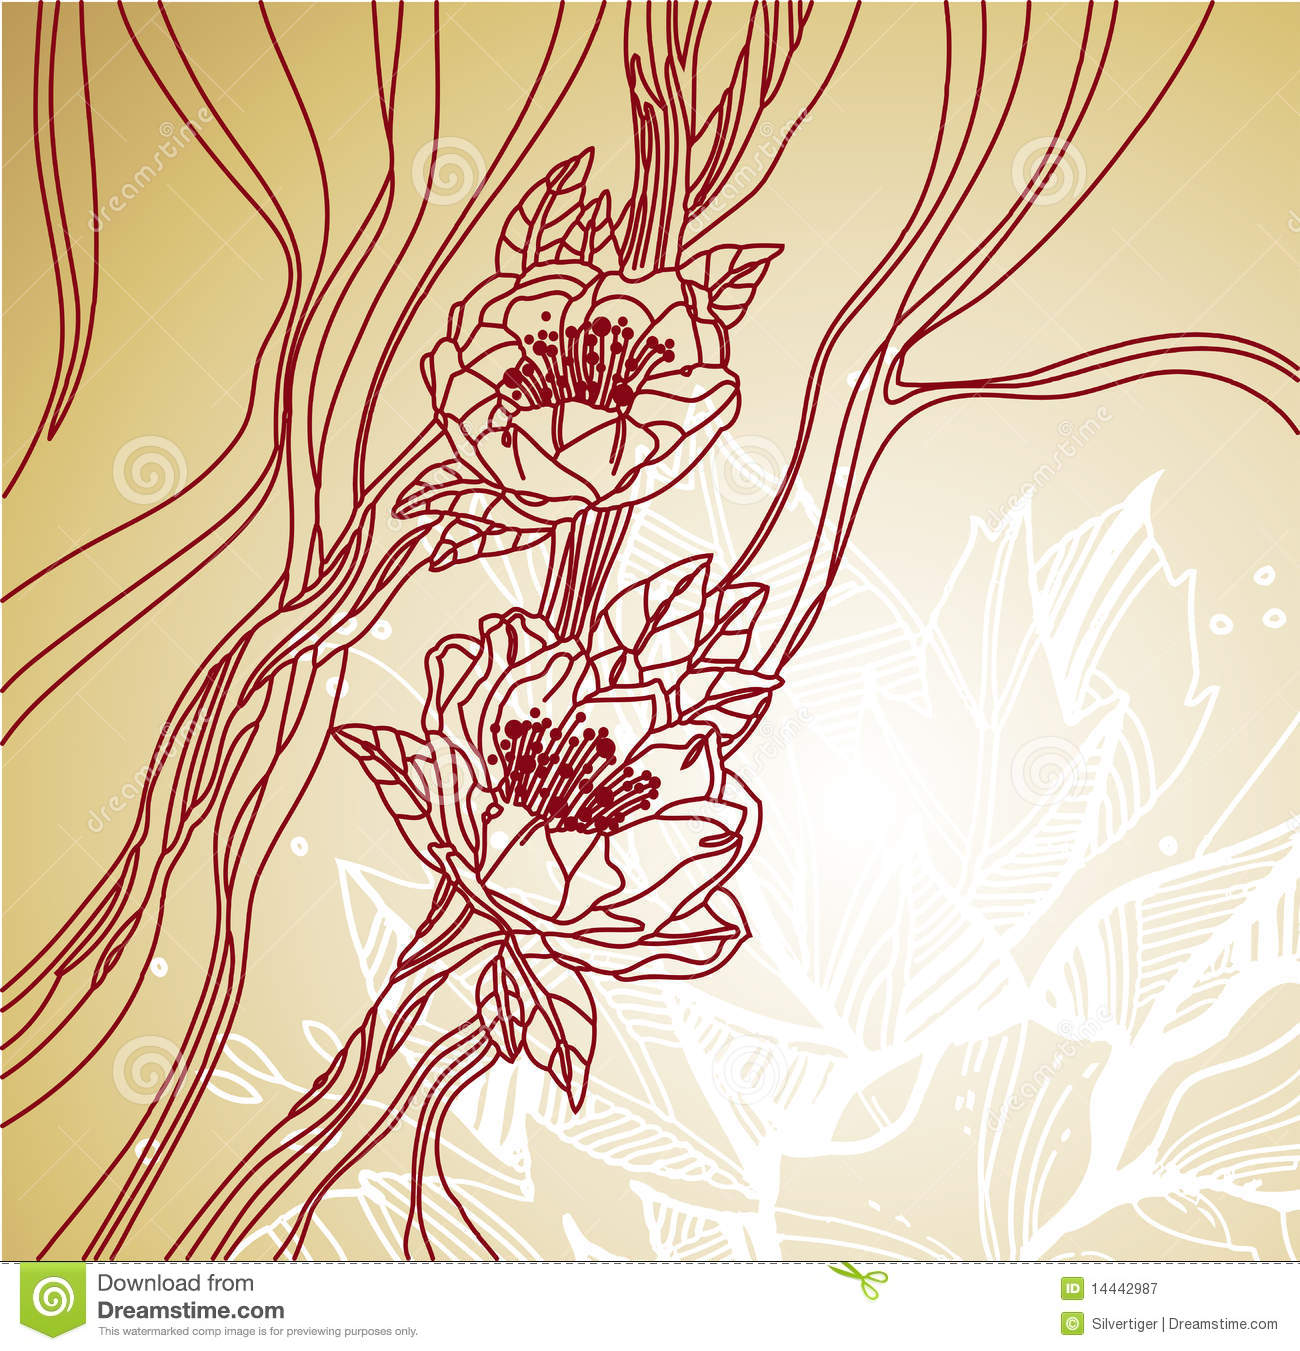 Line Art Flower Background : Floral line art background royalty free stock photography